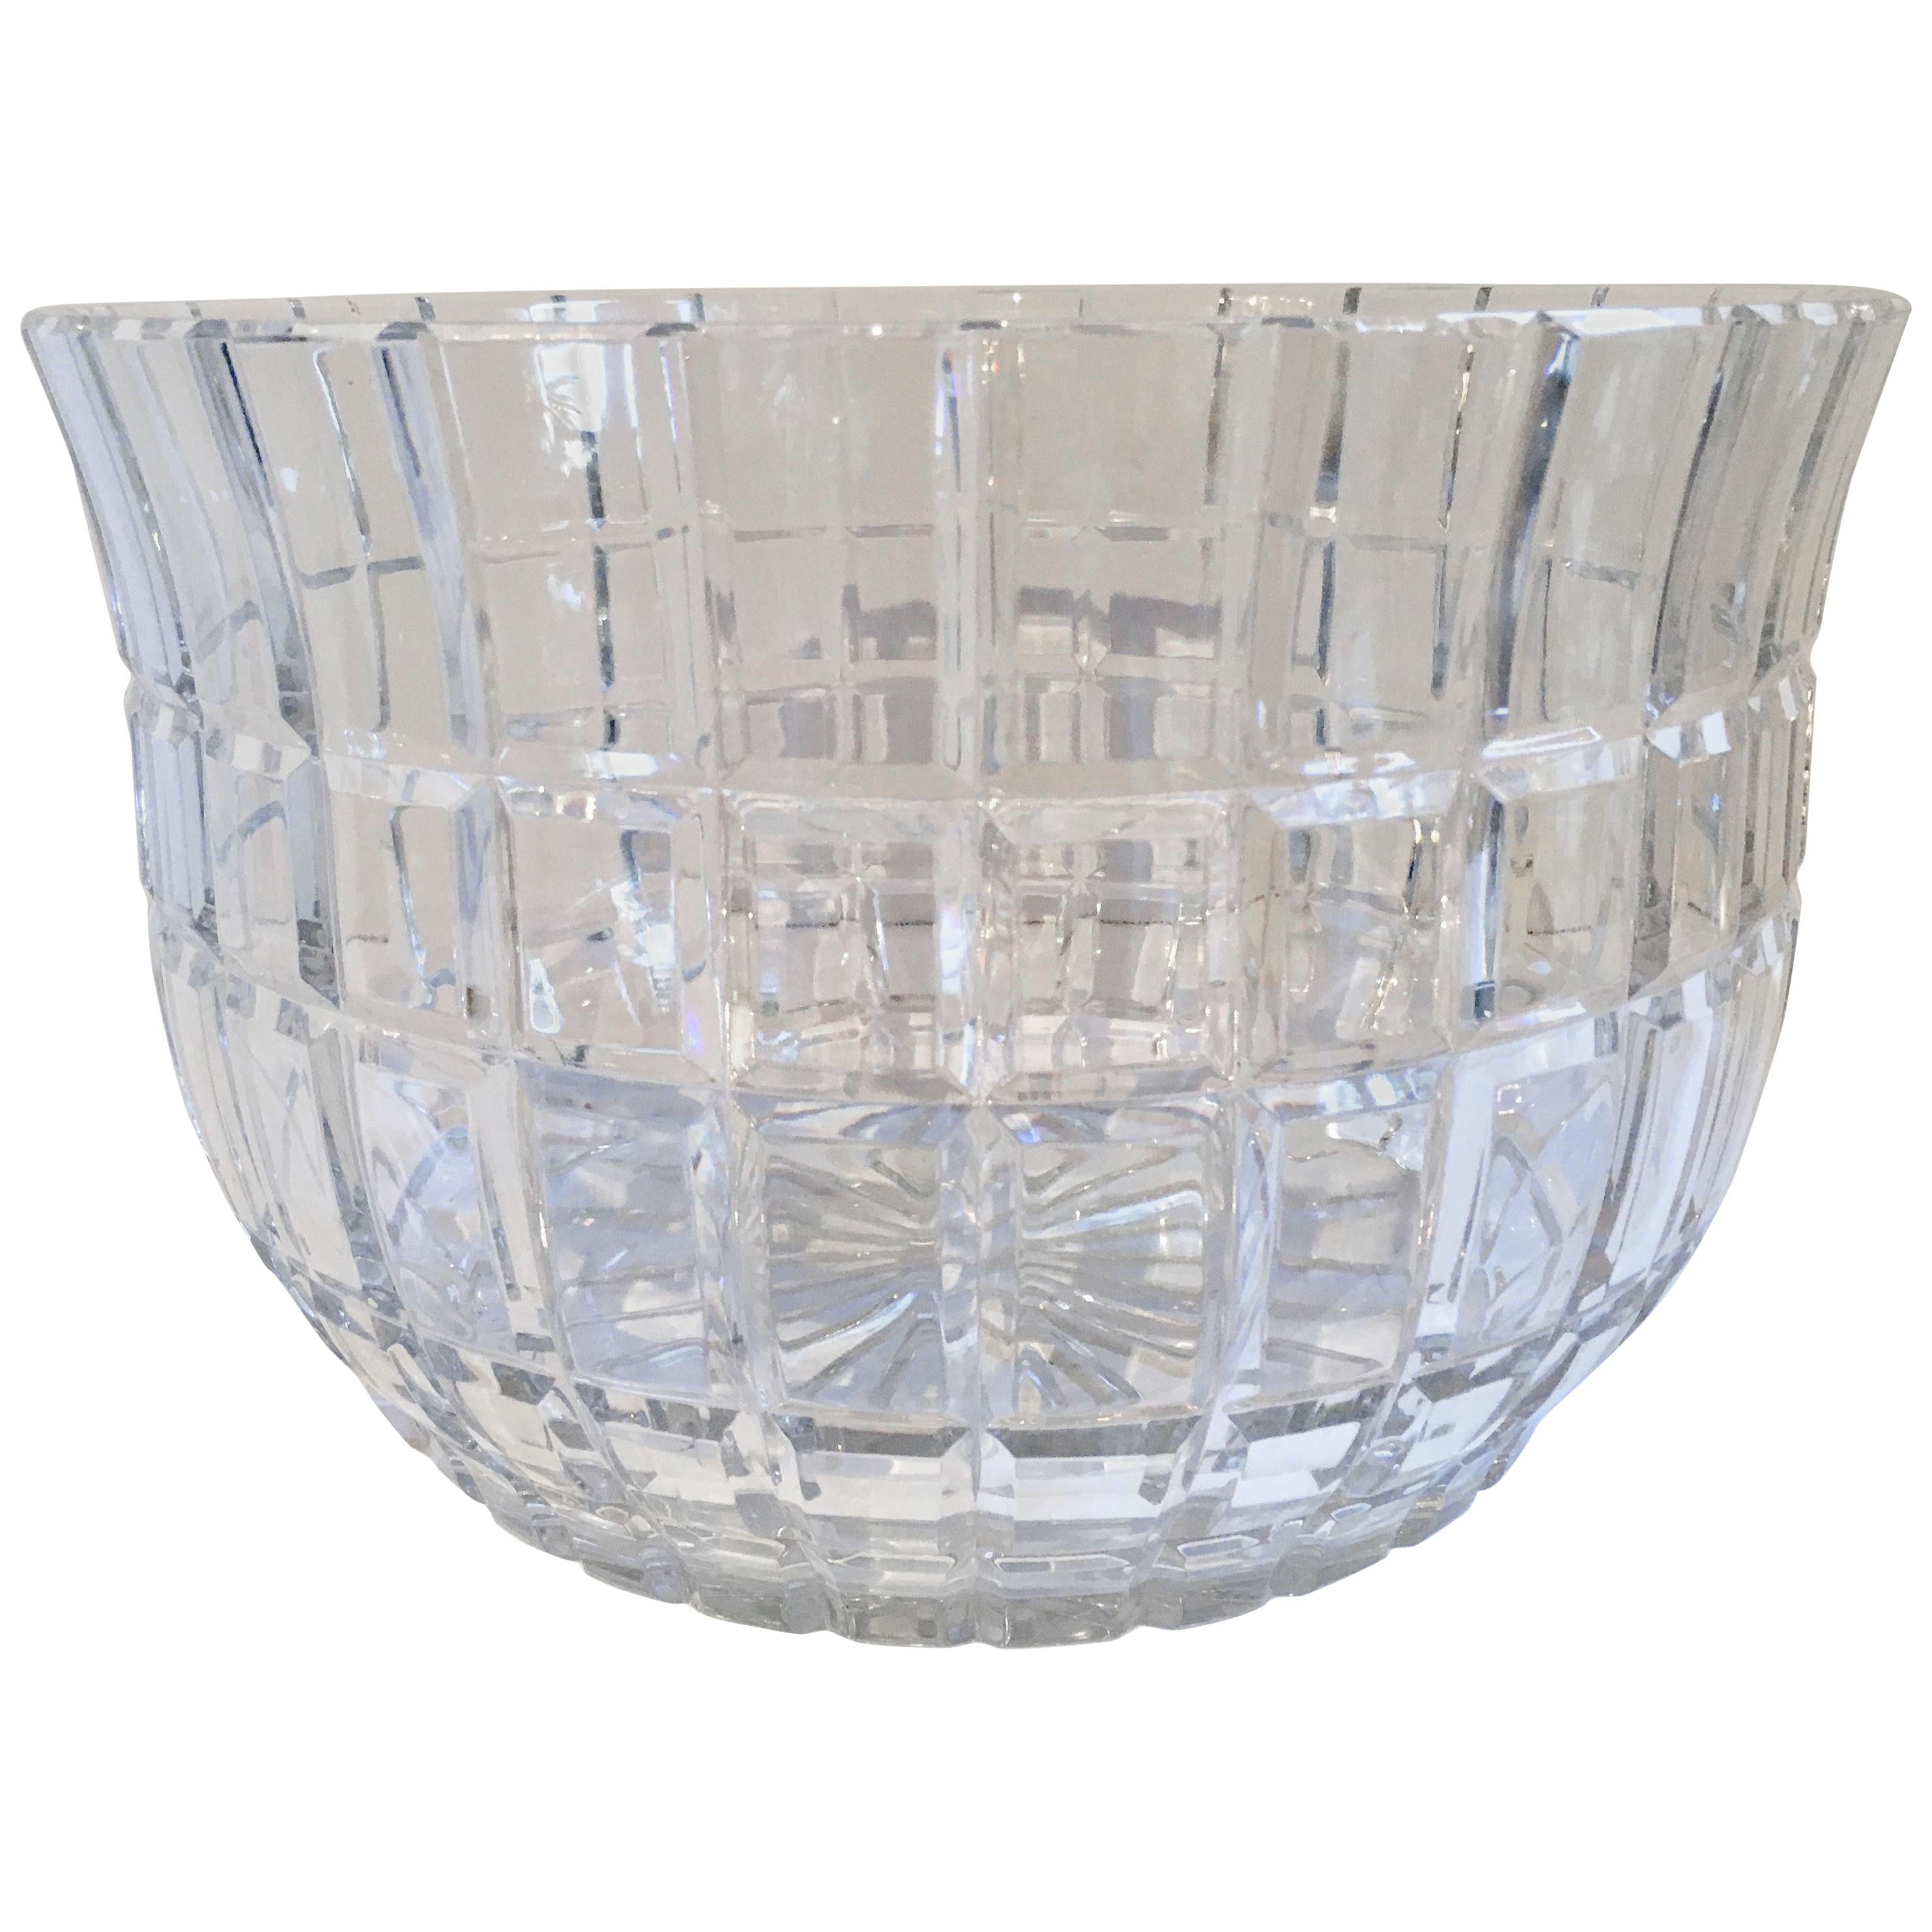 Cut Crystal Serving Bowl